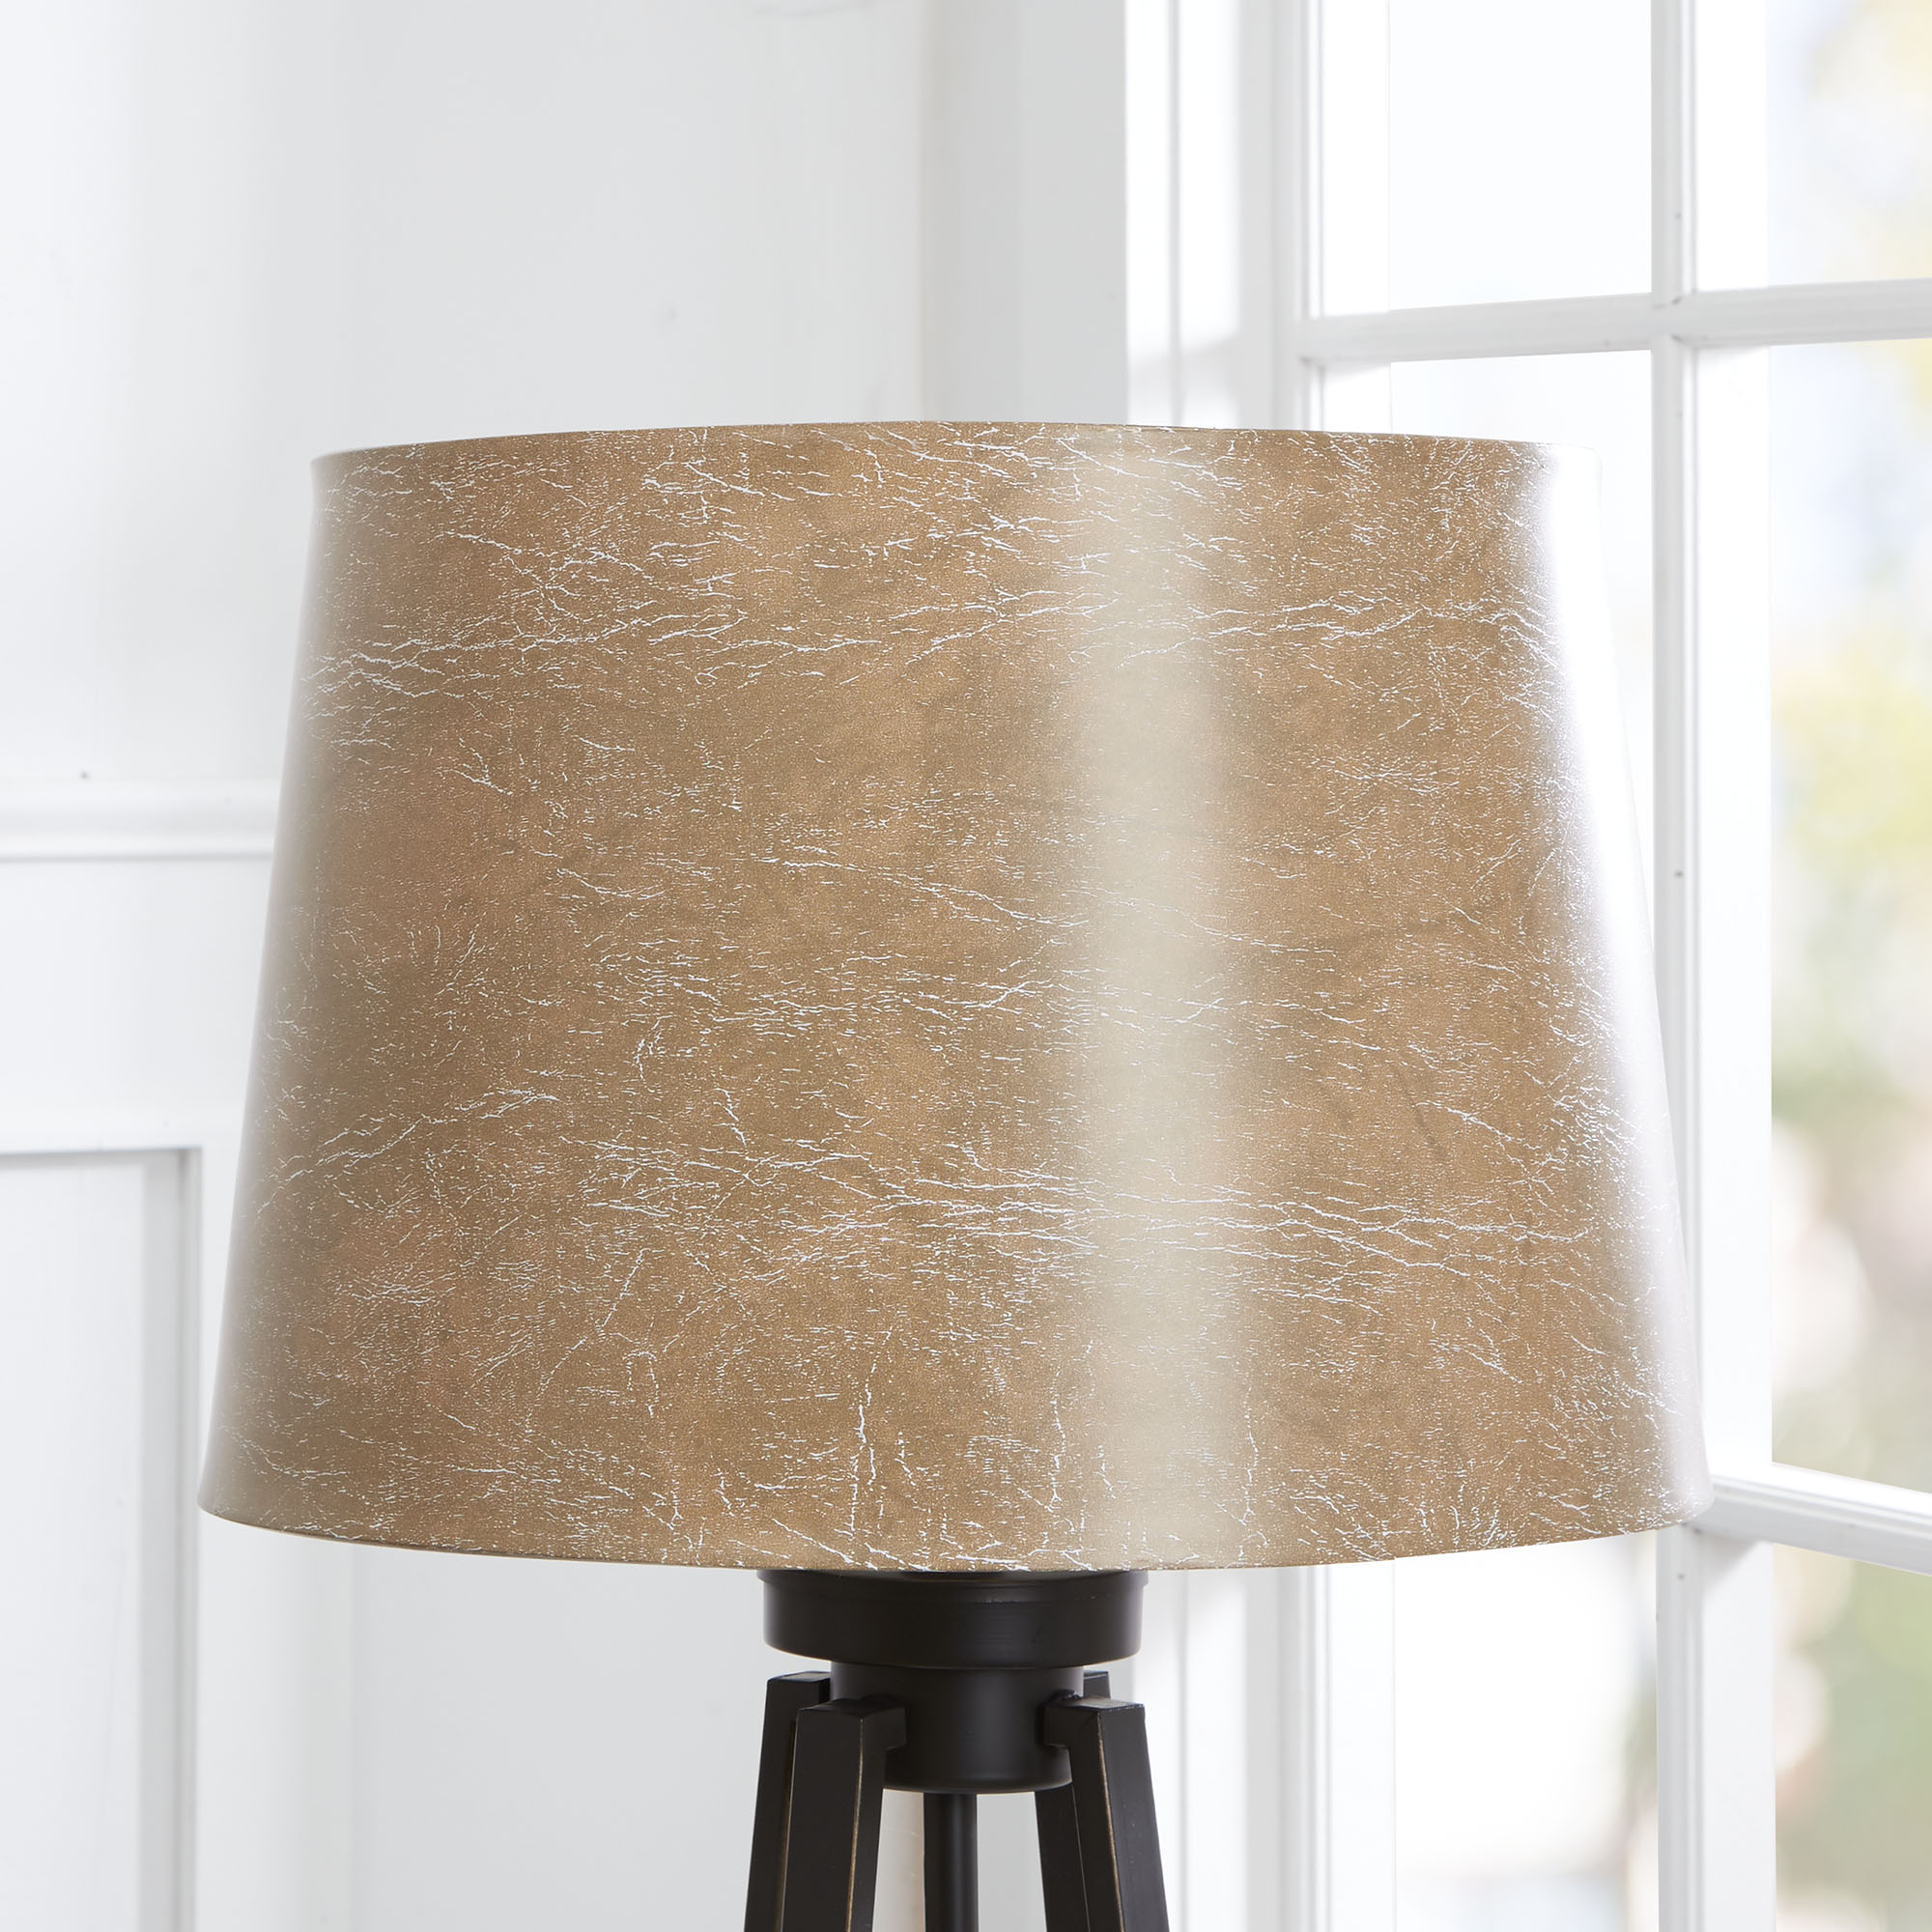 unique uno lighting fitter lamp and zebra table threaded lamps for your print lovely light likable small shade agreeable leopard animal shades feather q